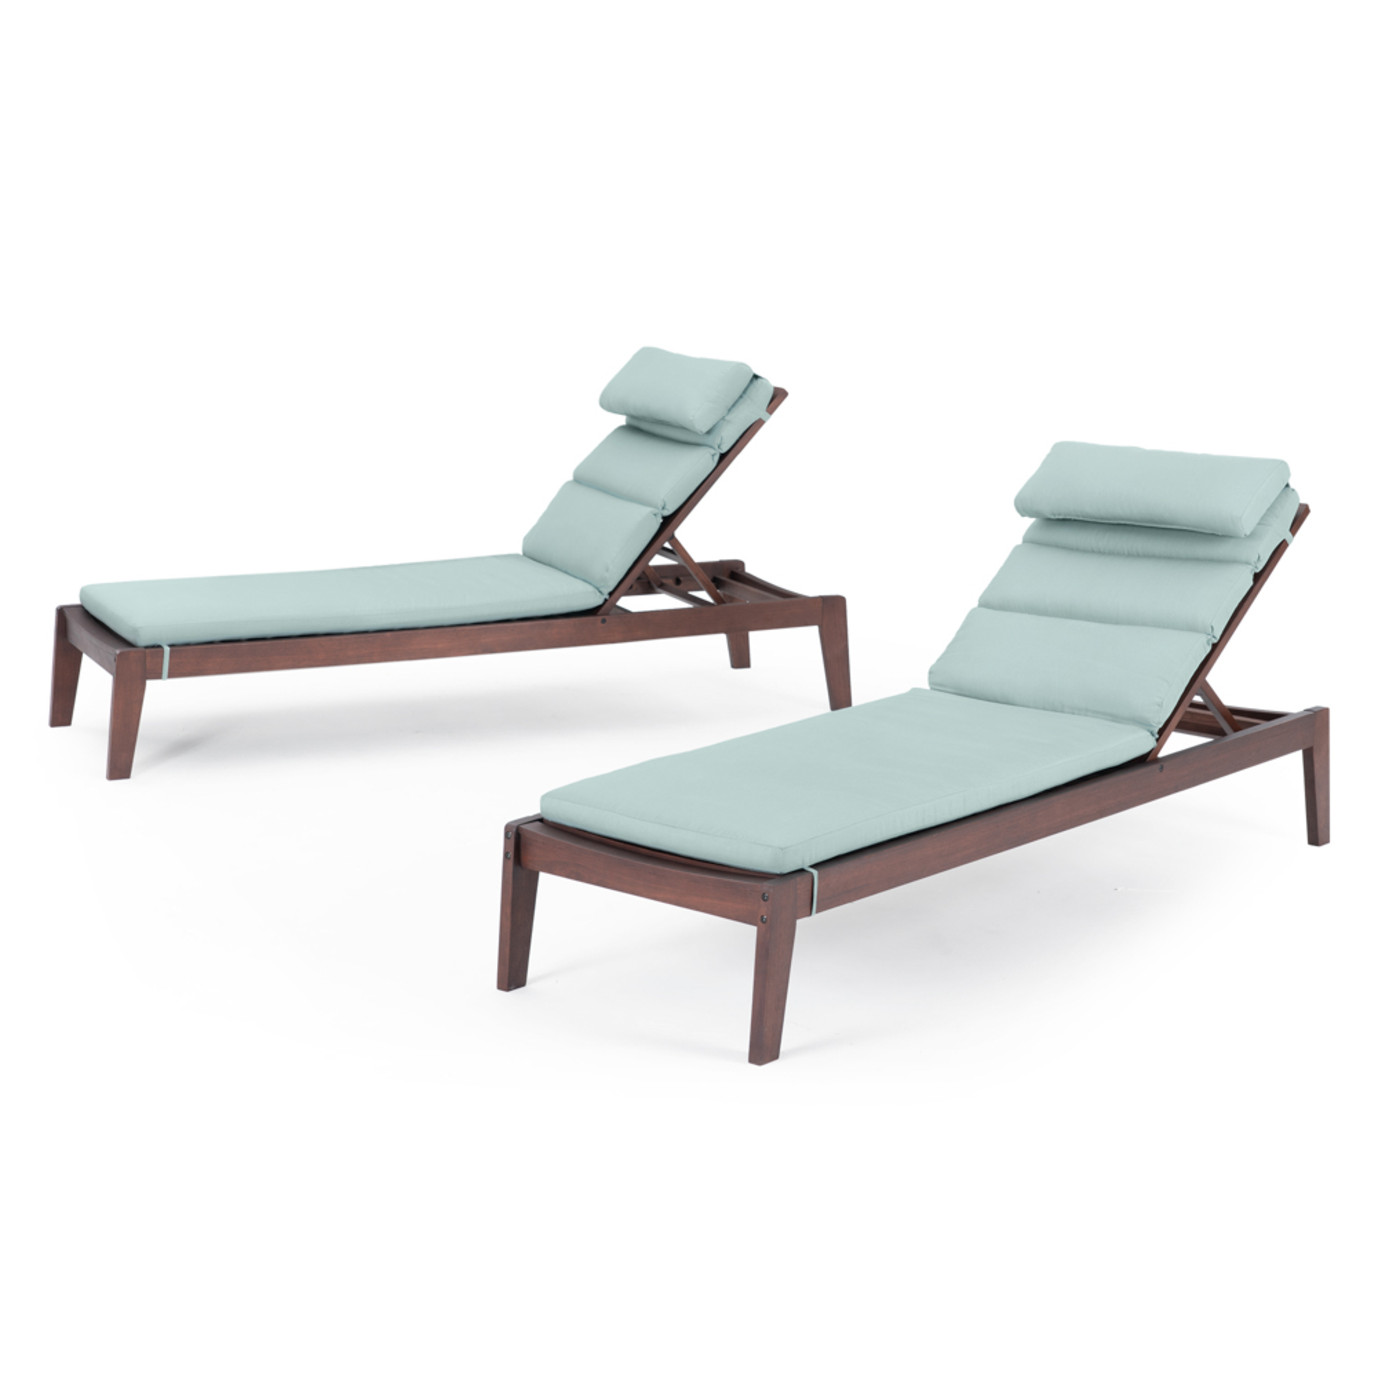 Vaughn Chaise Lounges - Bliss Blue